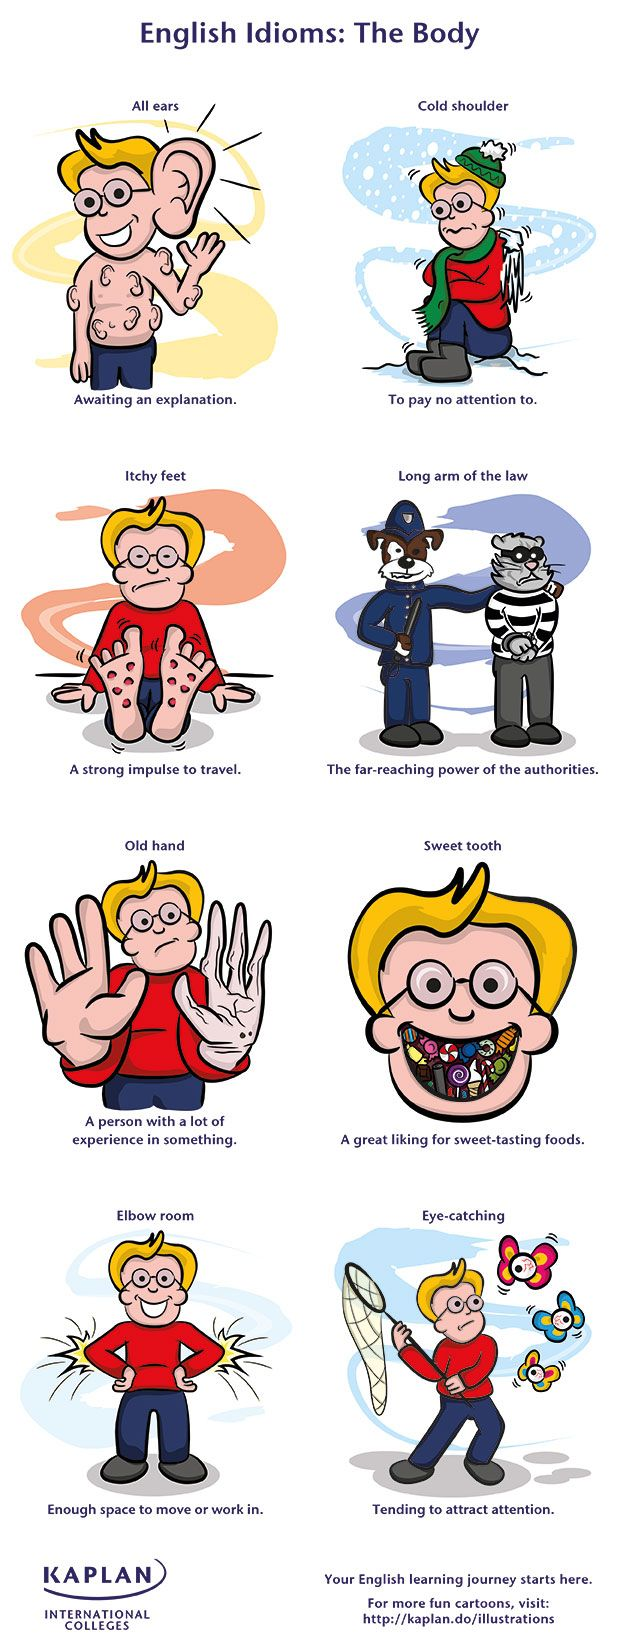 English 8 Creepy Body Idioms You Can't Speak Without